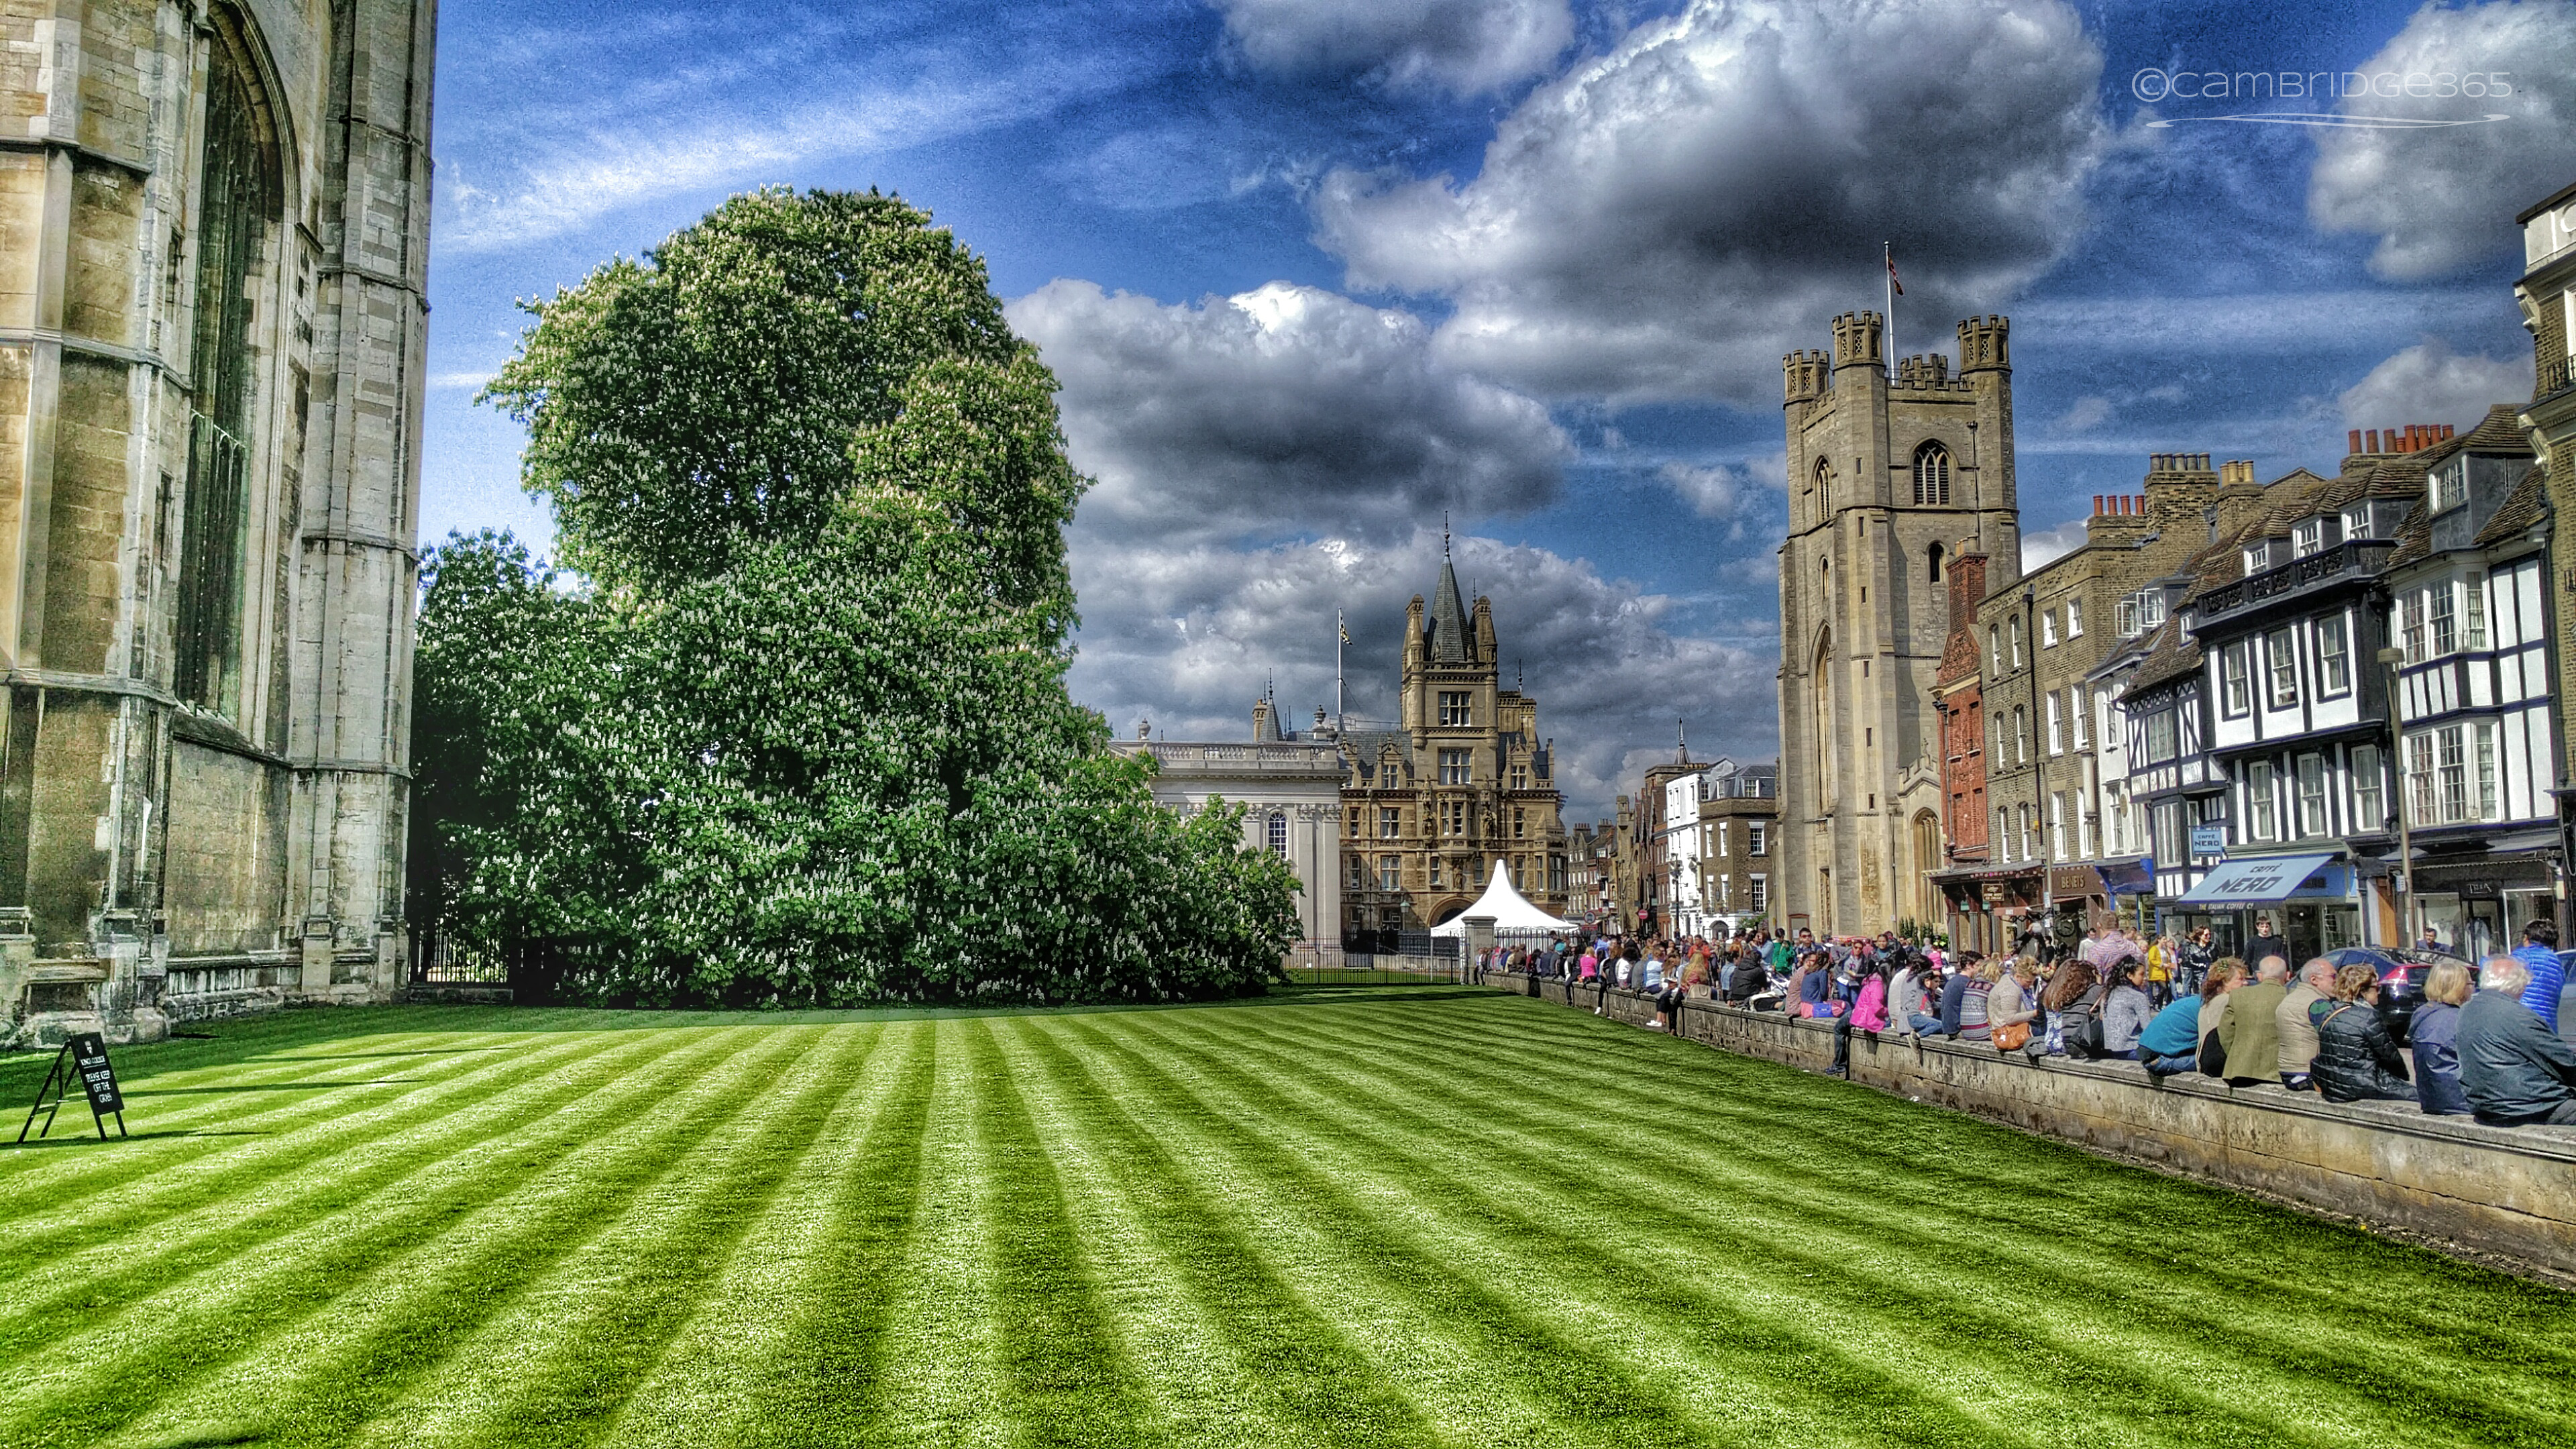 King's parade and the lawn in front of King's college